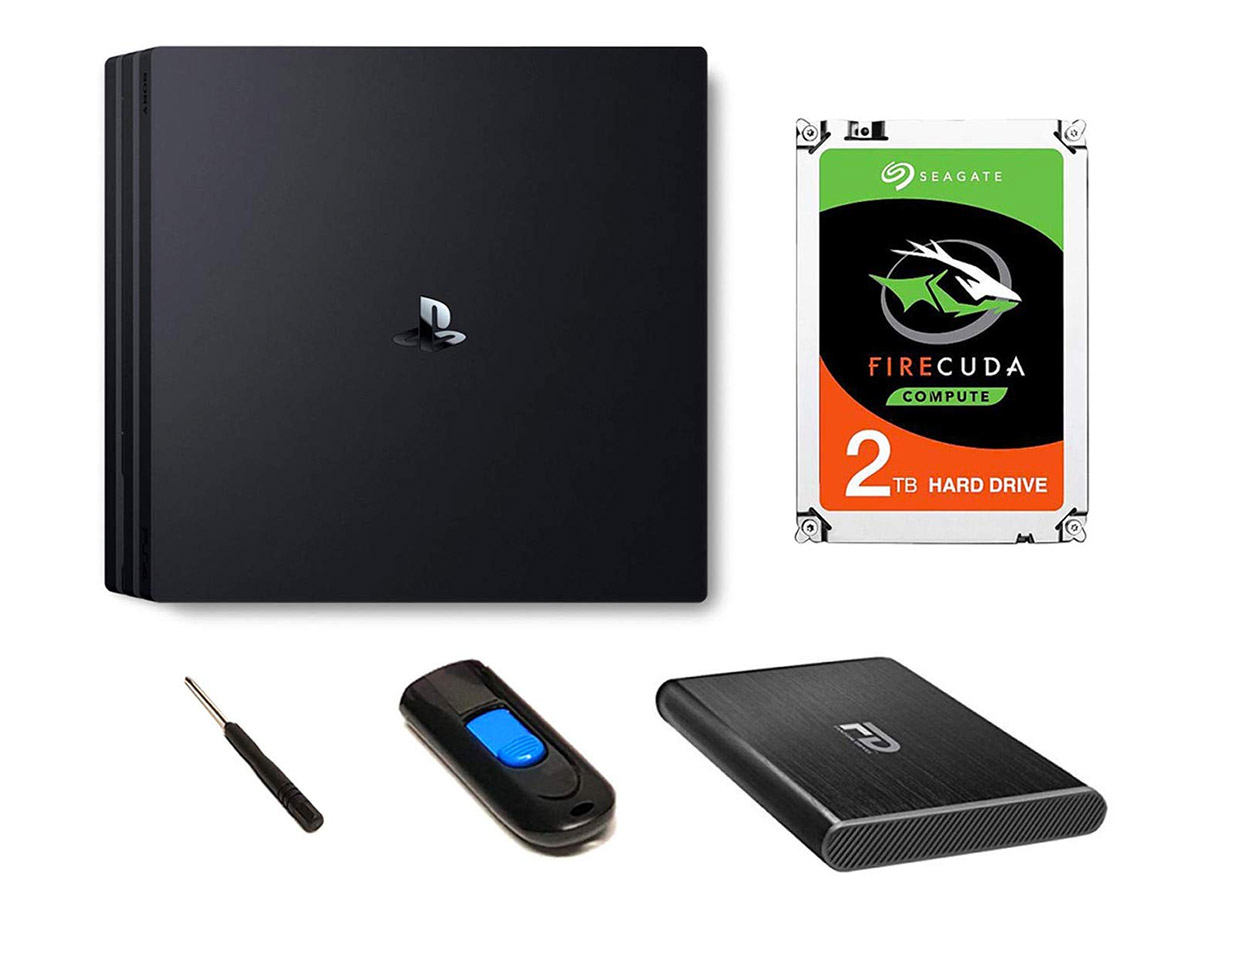 Fantom PS4 Hard Drive Upgrade Kit